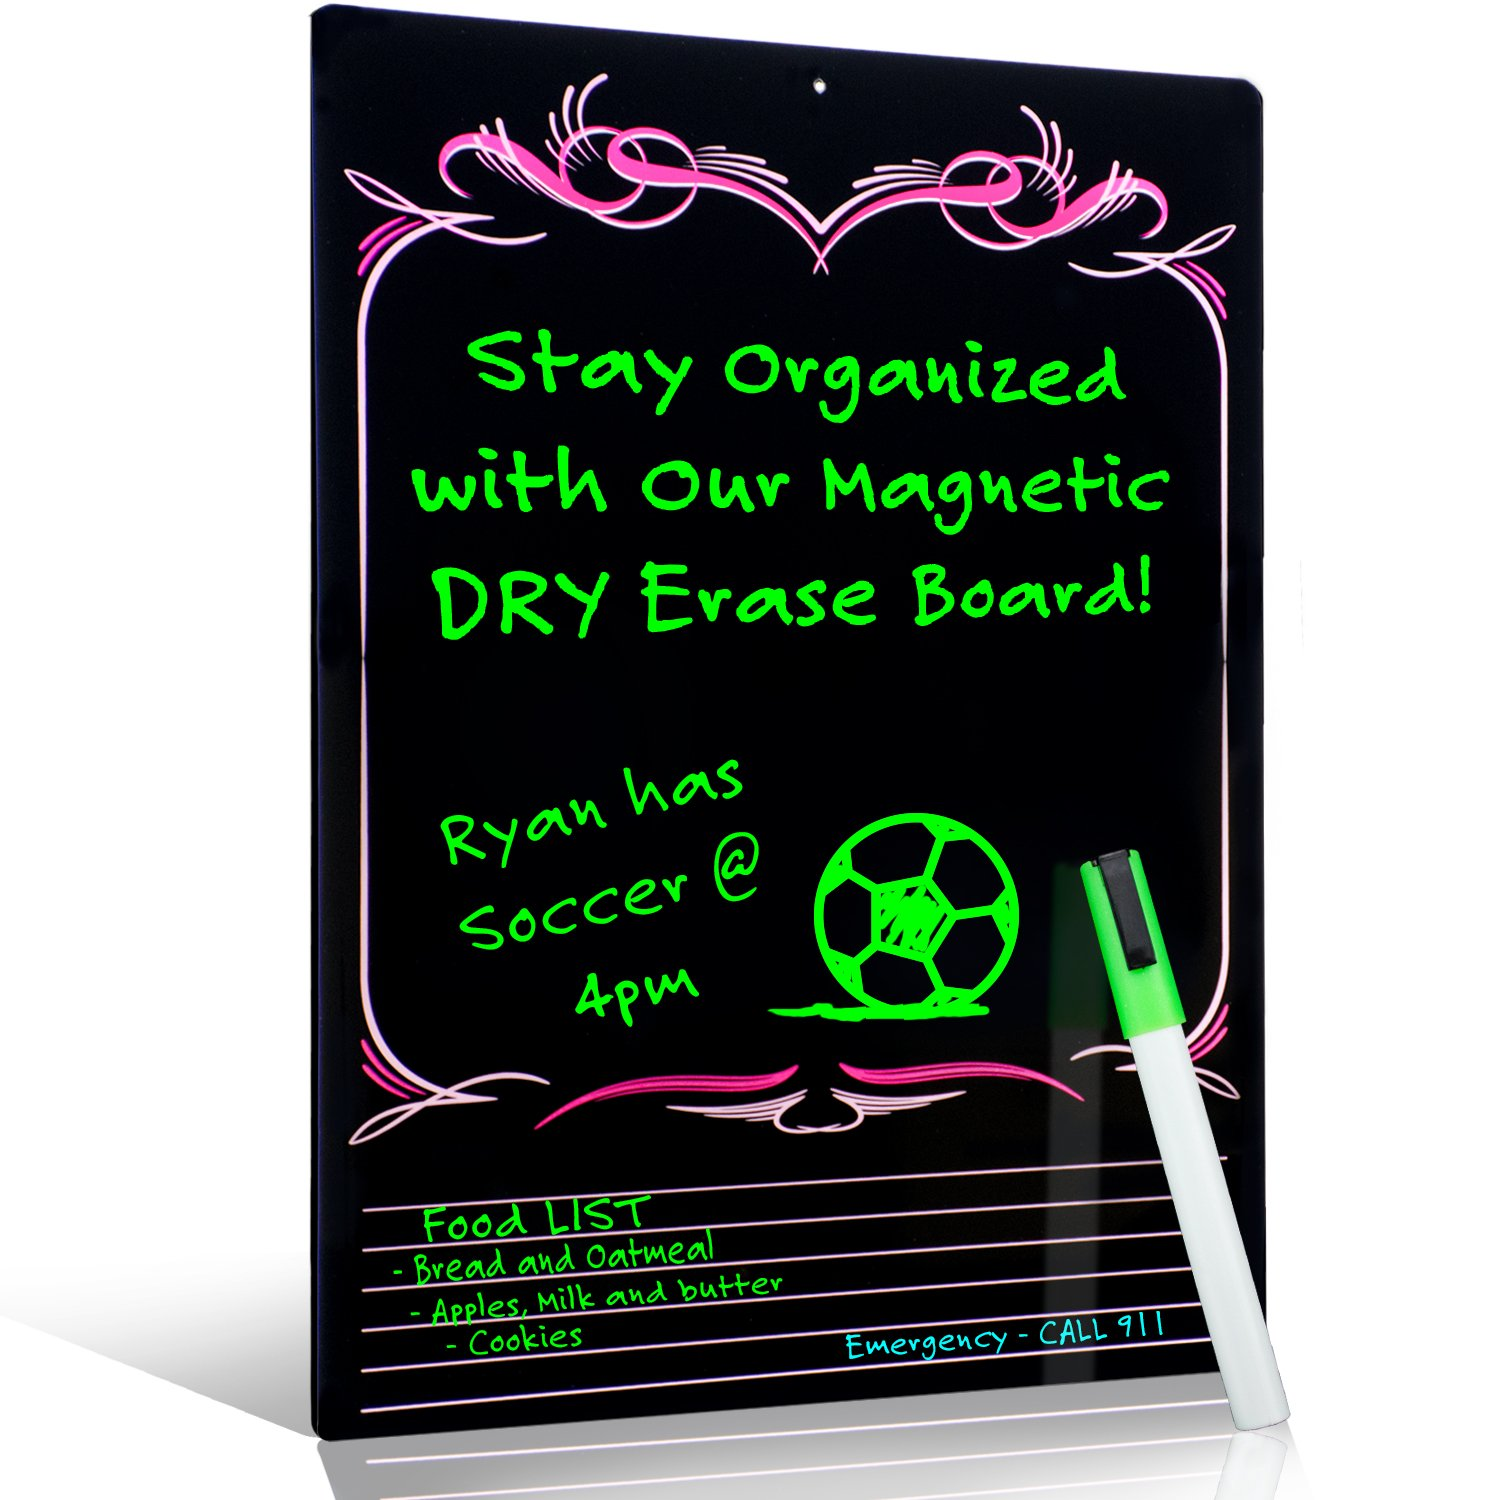 Smart Planner's RIGID Multi-Purpose Magnetic Wall Hanging Dry Erase Message Board & Organizer | Chores, To-do list, Reminders Planner for Home, Office or School | with Marker (Pink/White)